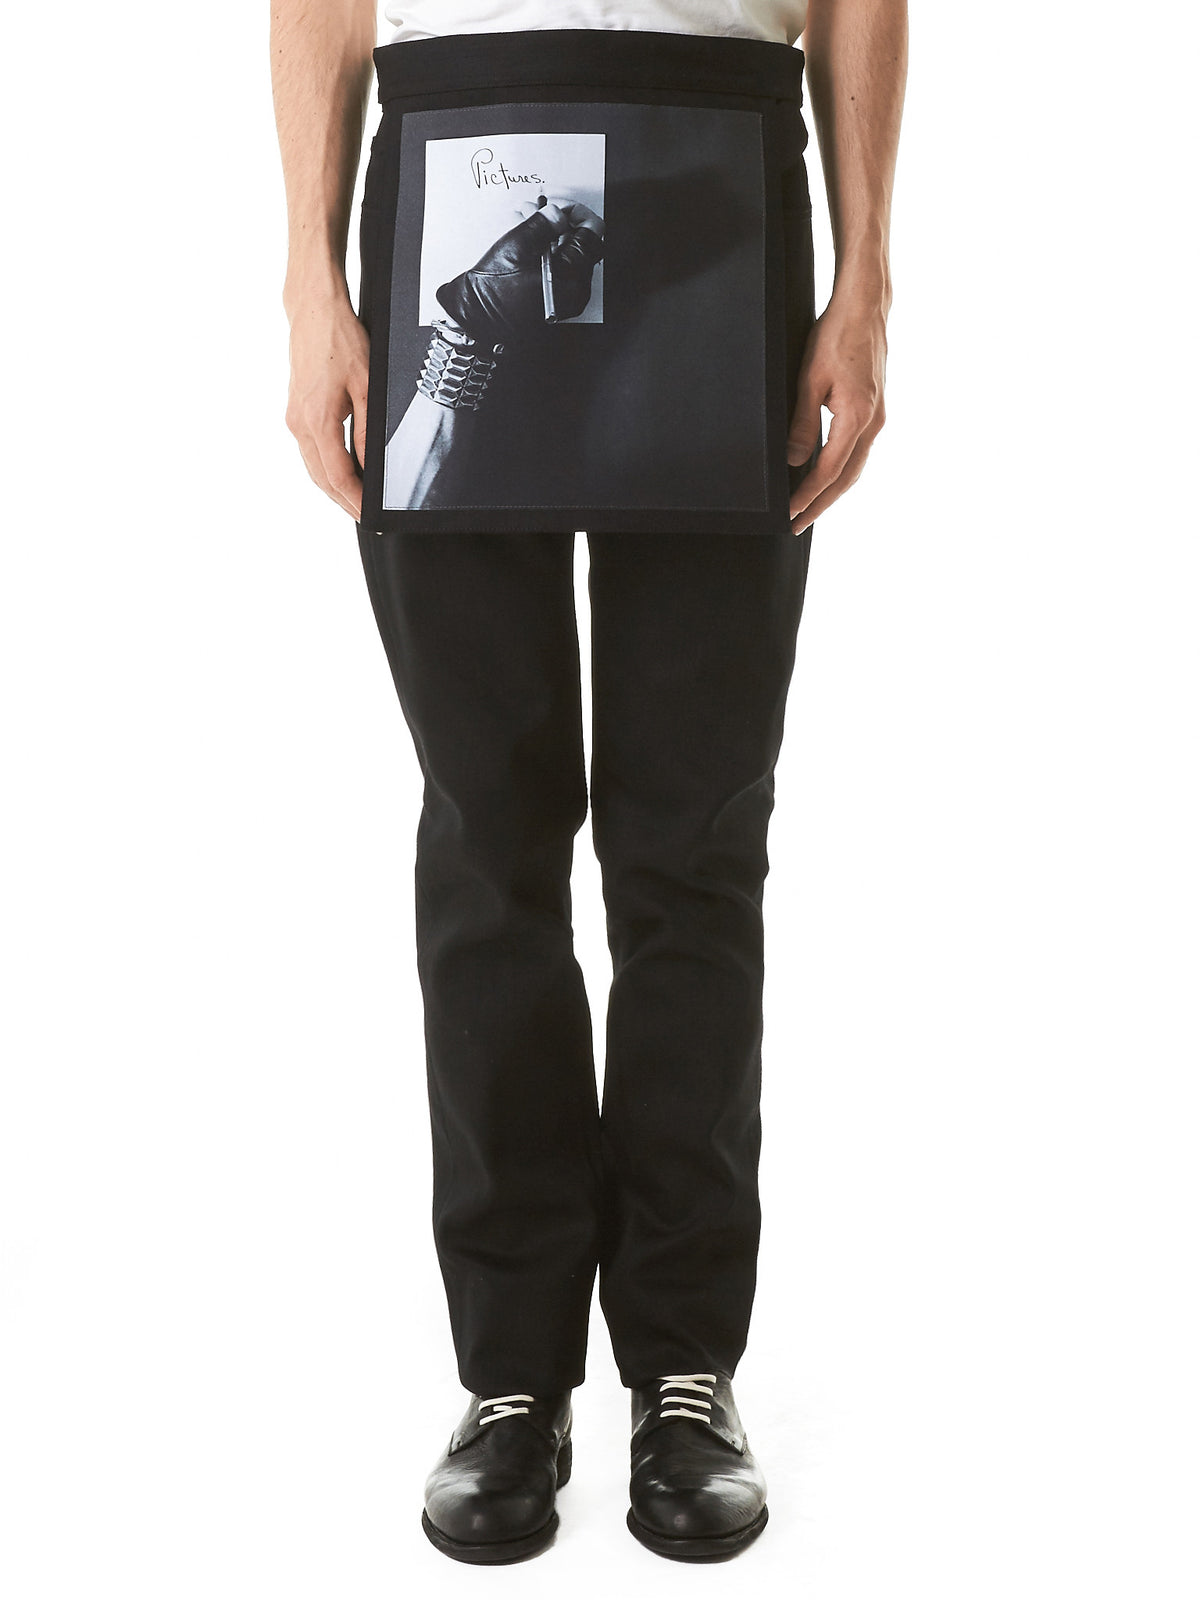 Layered Graphic Patchwork Pants (171-343-10022-00099-BLK) - H. Lorenzo